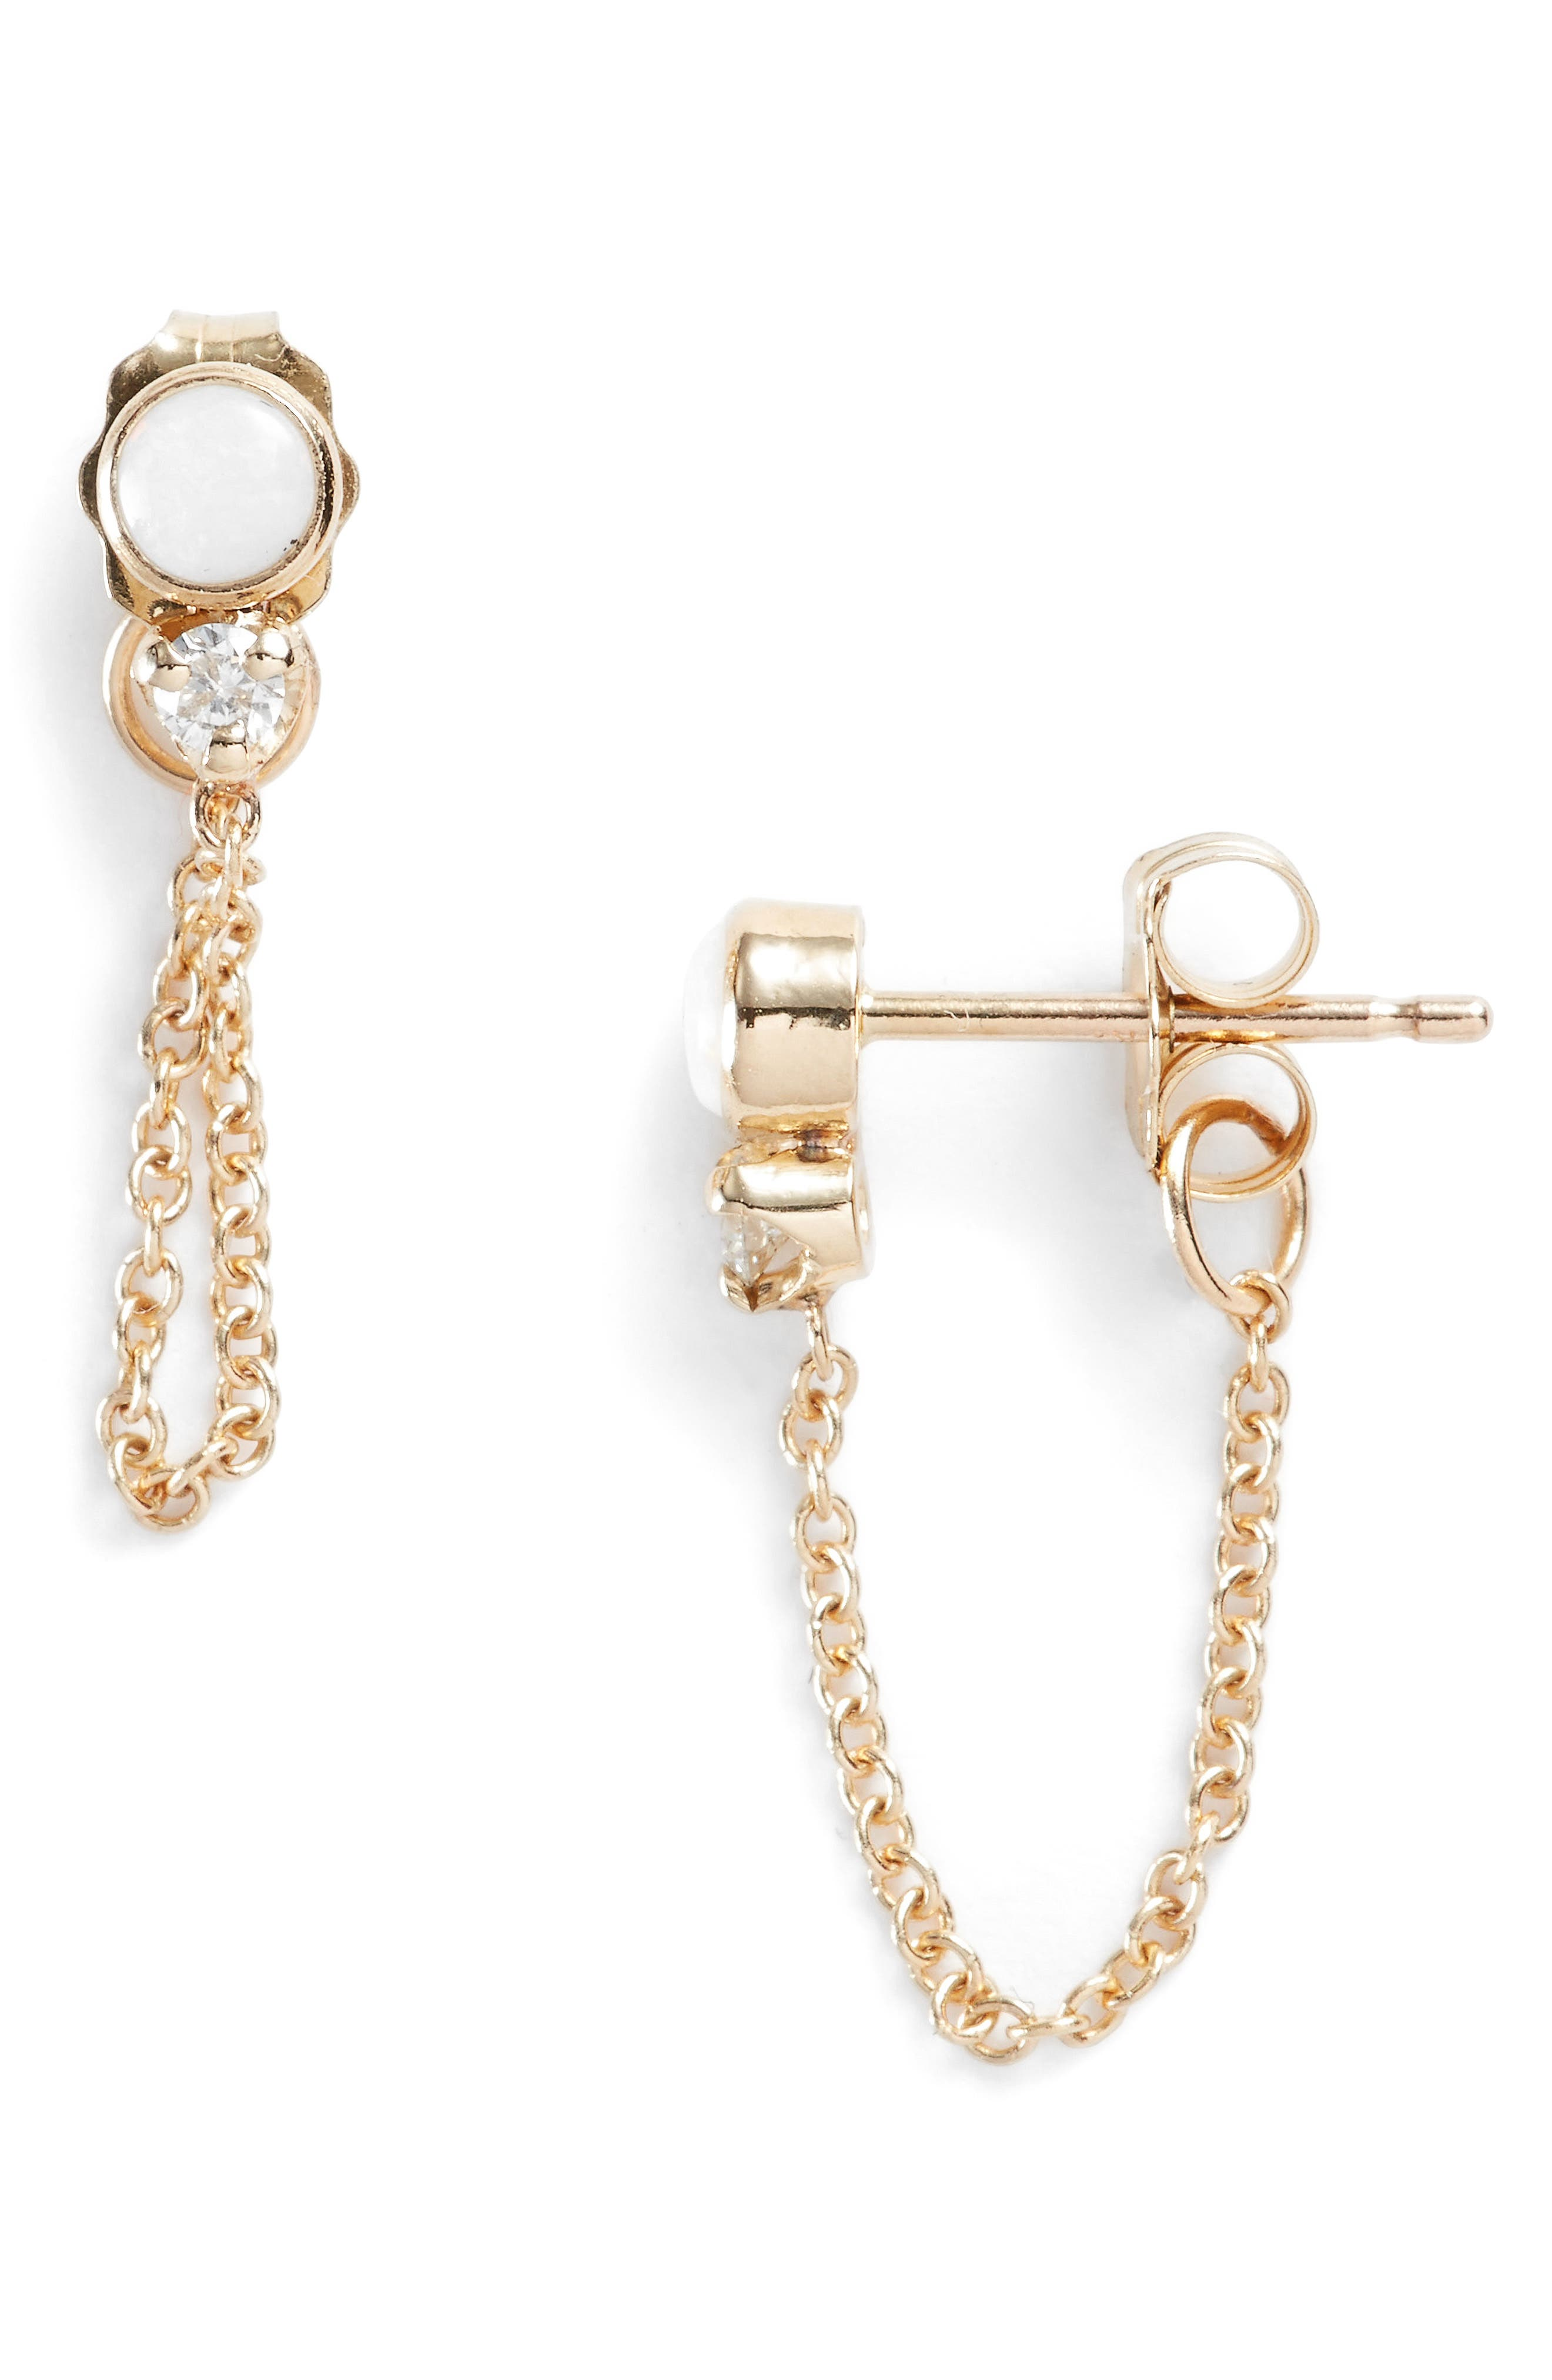 Main Image - Zoë Chicco Diamond & Opal Front Back Earrings (Nordstrom Exclusive)